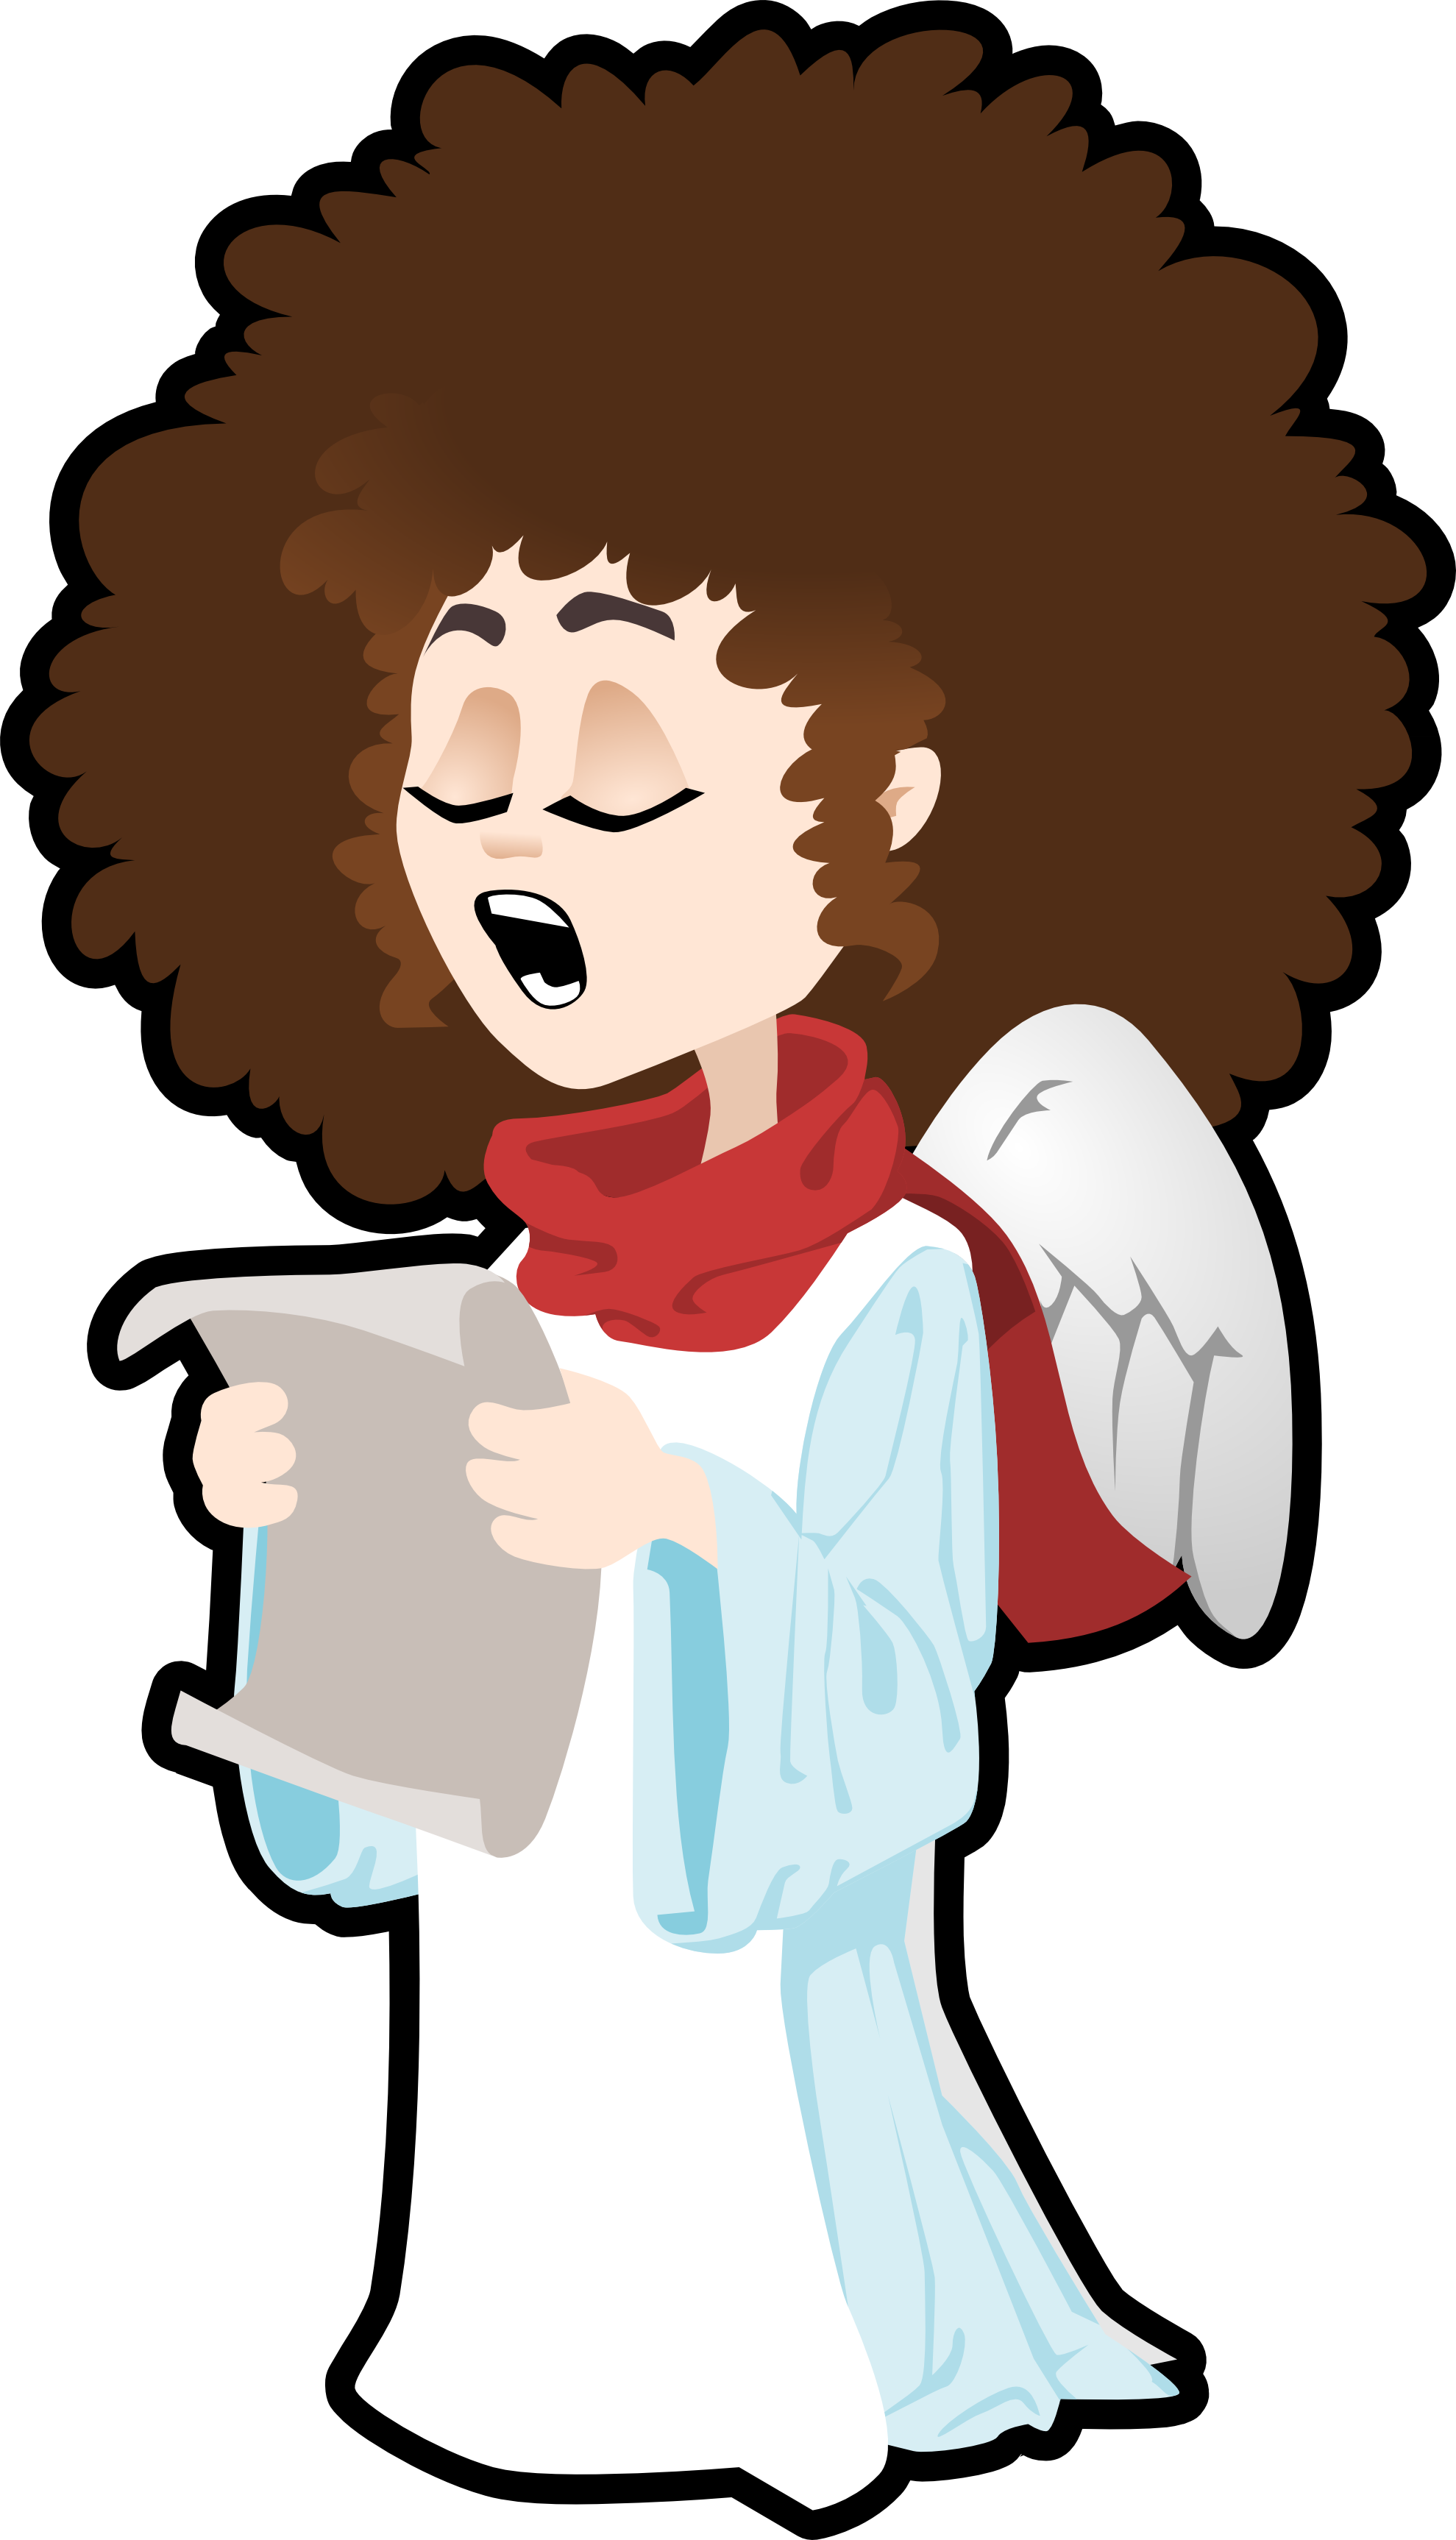 African American Angels Clip Art free image.